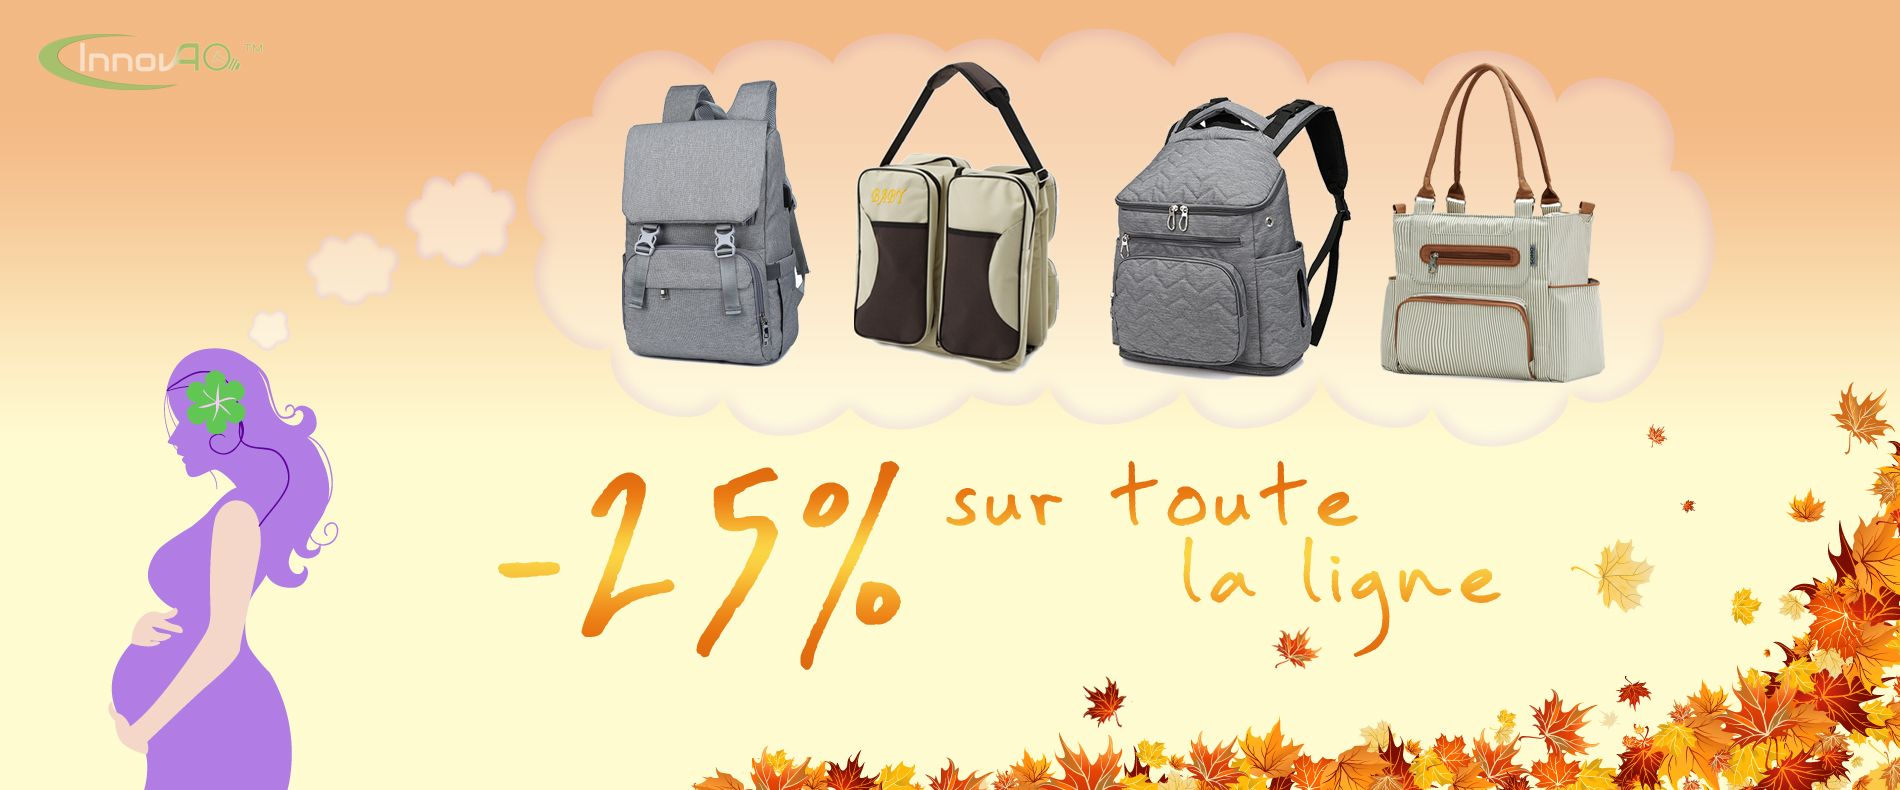 Black friday cyber monday innovao porte-bebe grignoteuse puericulture parent maman papa